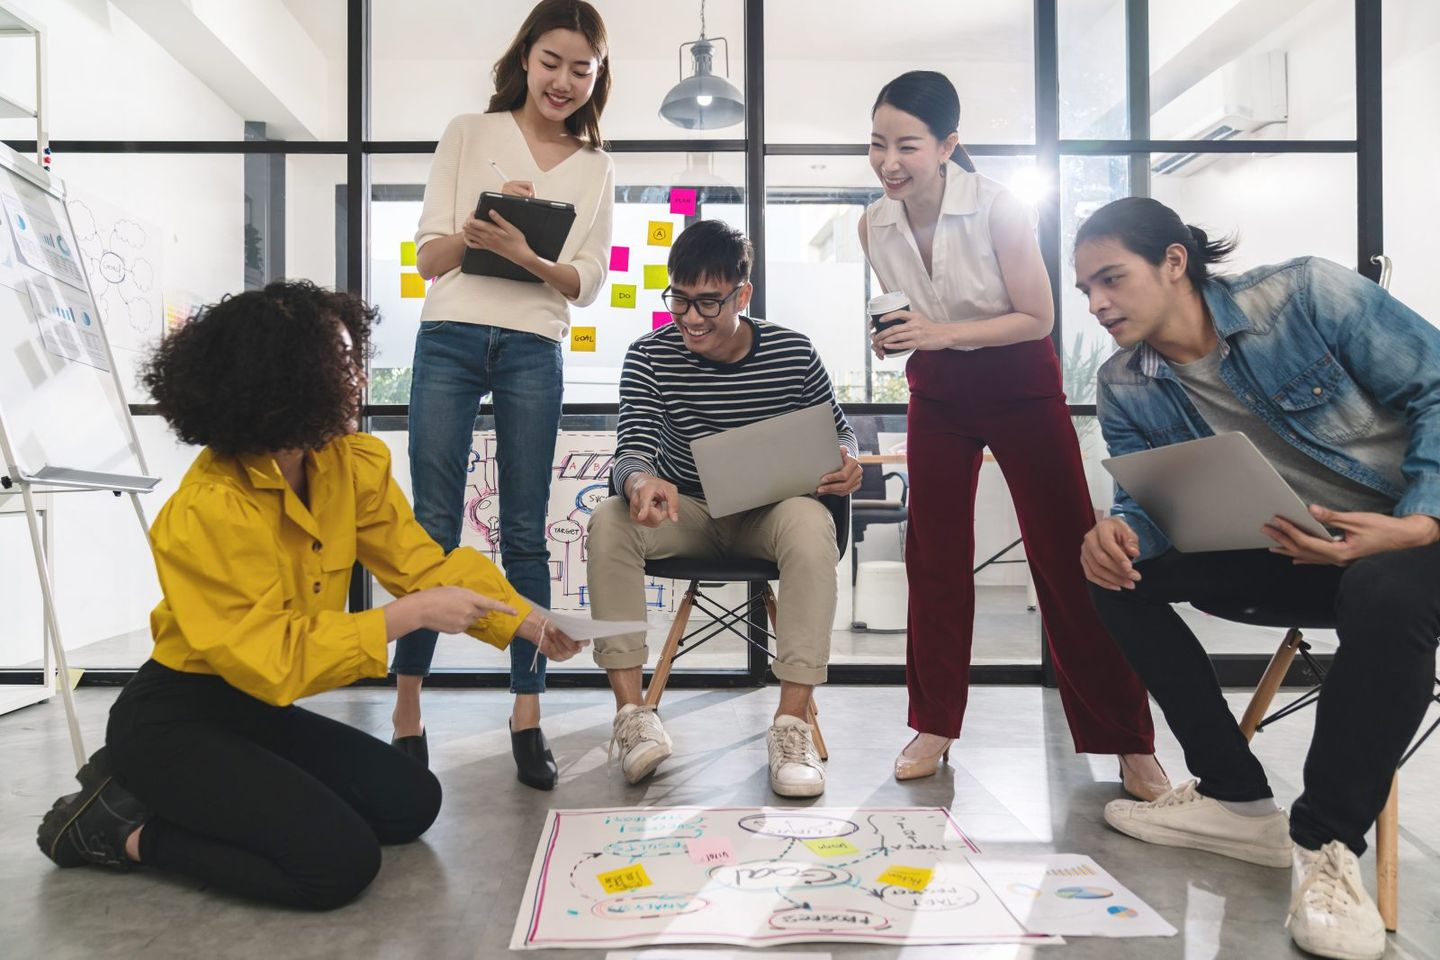 Young creative asian group meeting and looking at project plan lay out on floor discuss or brainstorm business strategy with post note workshop for startup team in small office happy workplace